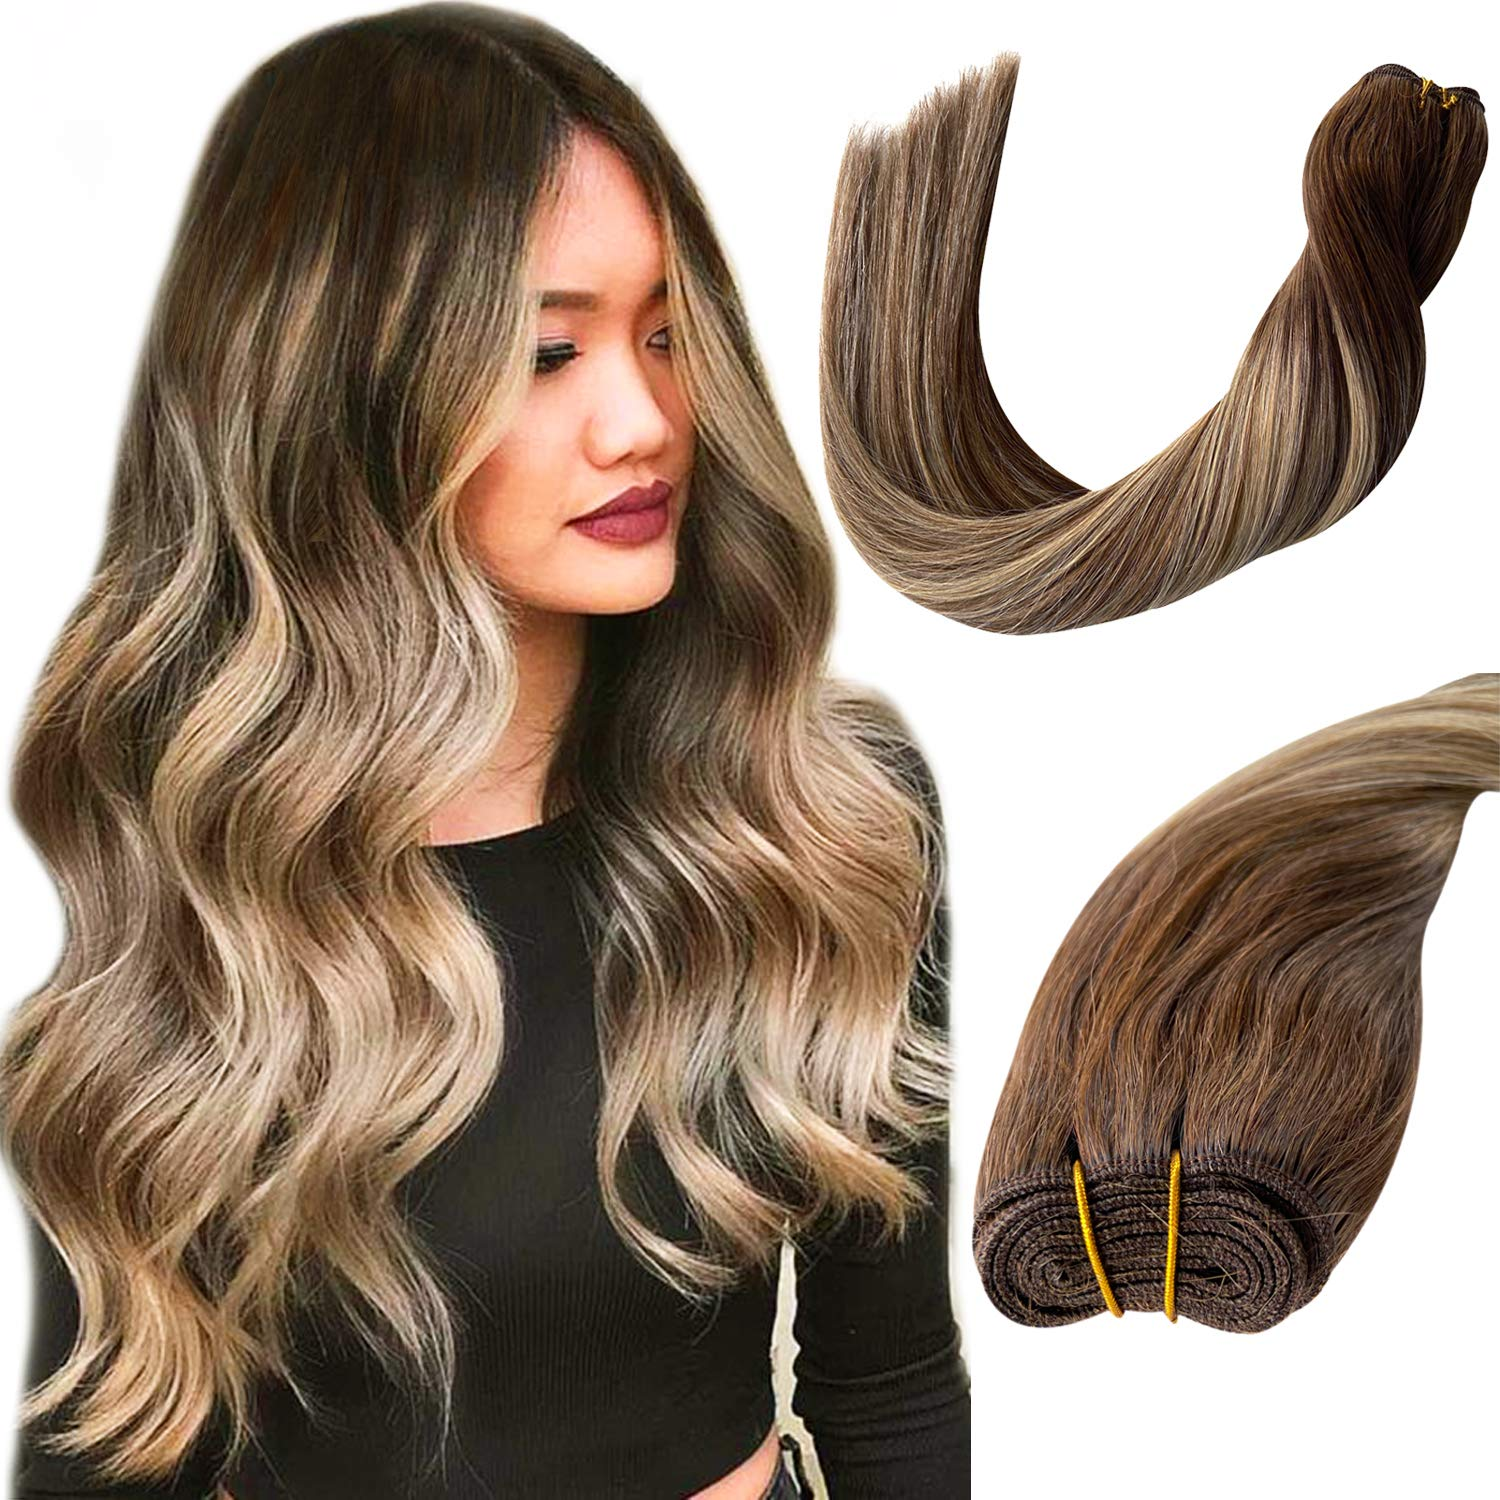 Ubetta Human Hair Bundles Sew in Hair Weft Extensions Chocolate Brown Roots to Brown with Honey Blonde Highlights Remy Human Hair Extensions Double Weft Real Weave Hair for Women 12 Inch 80 Gram